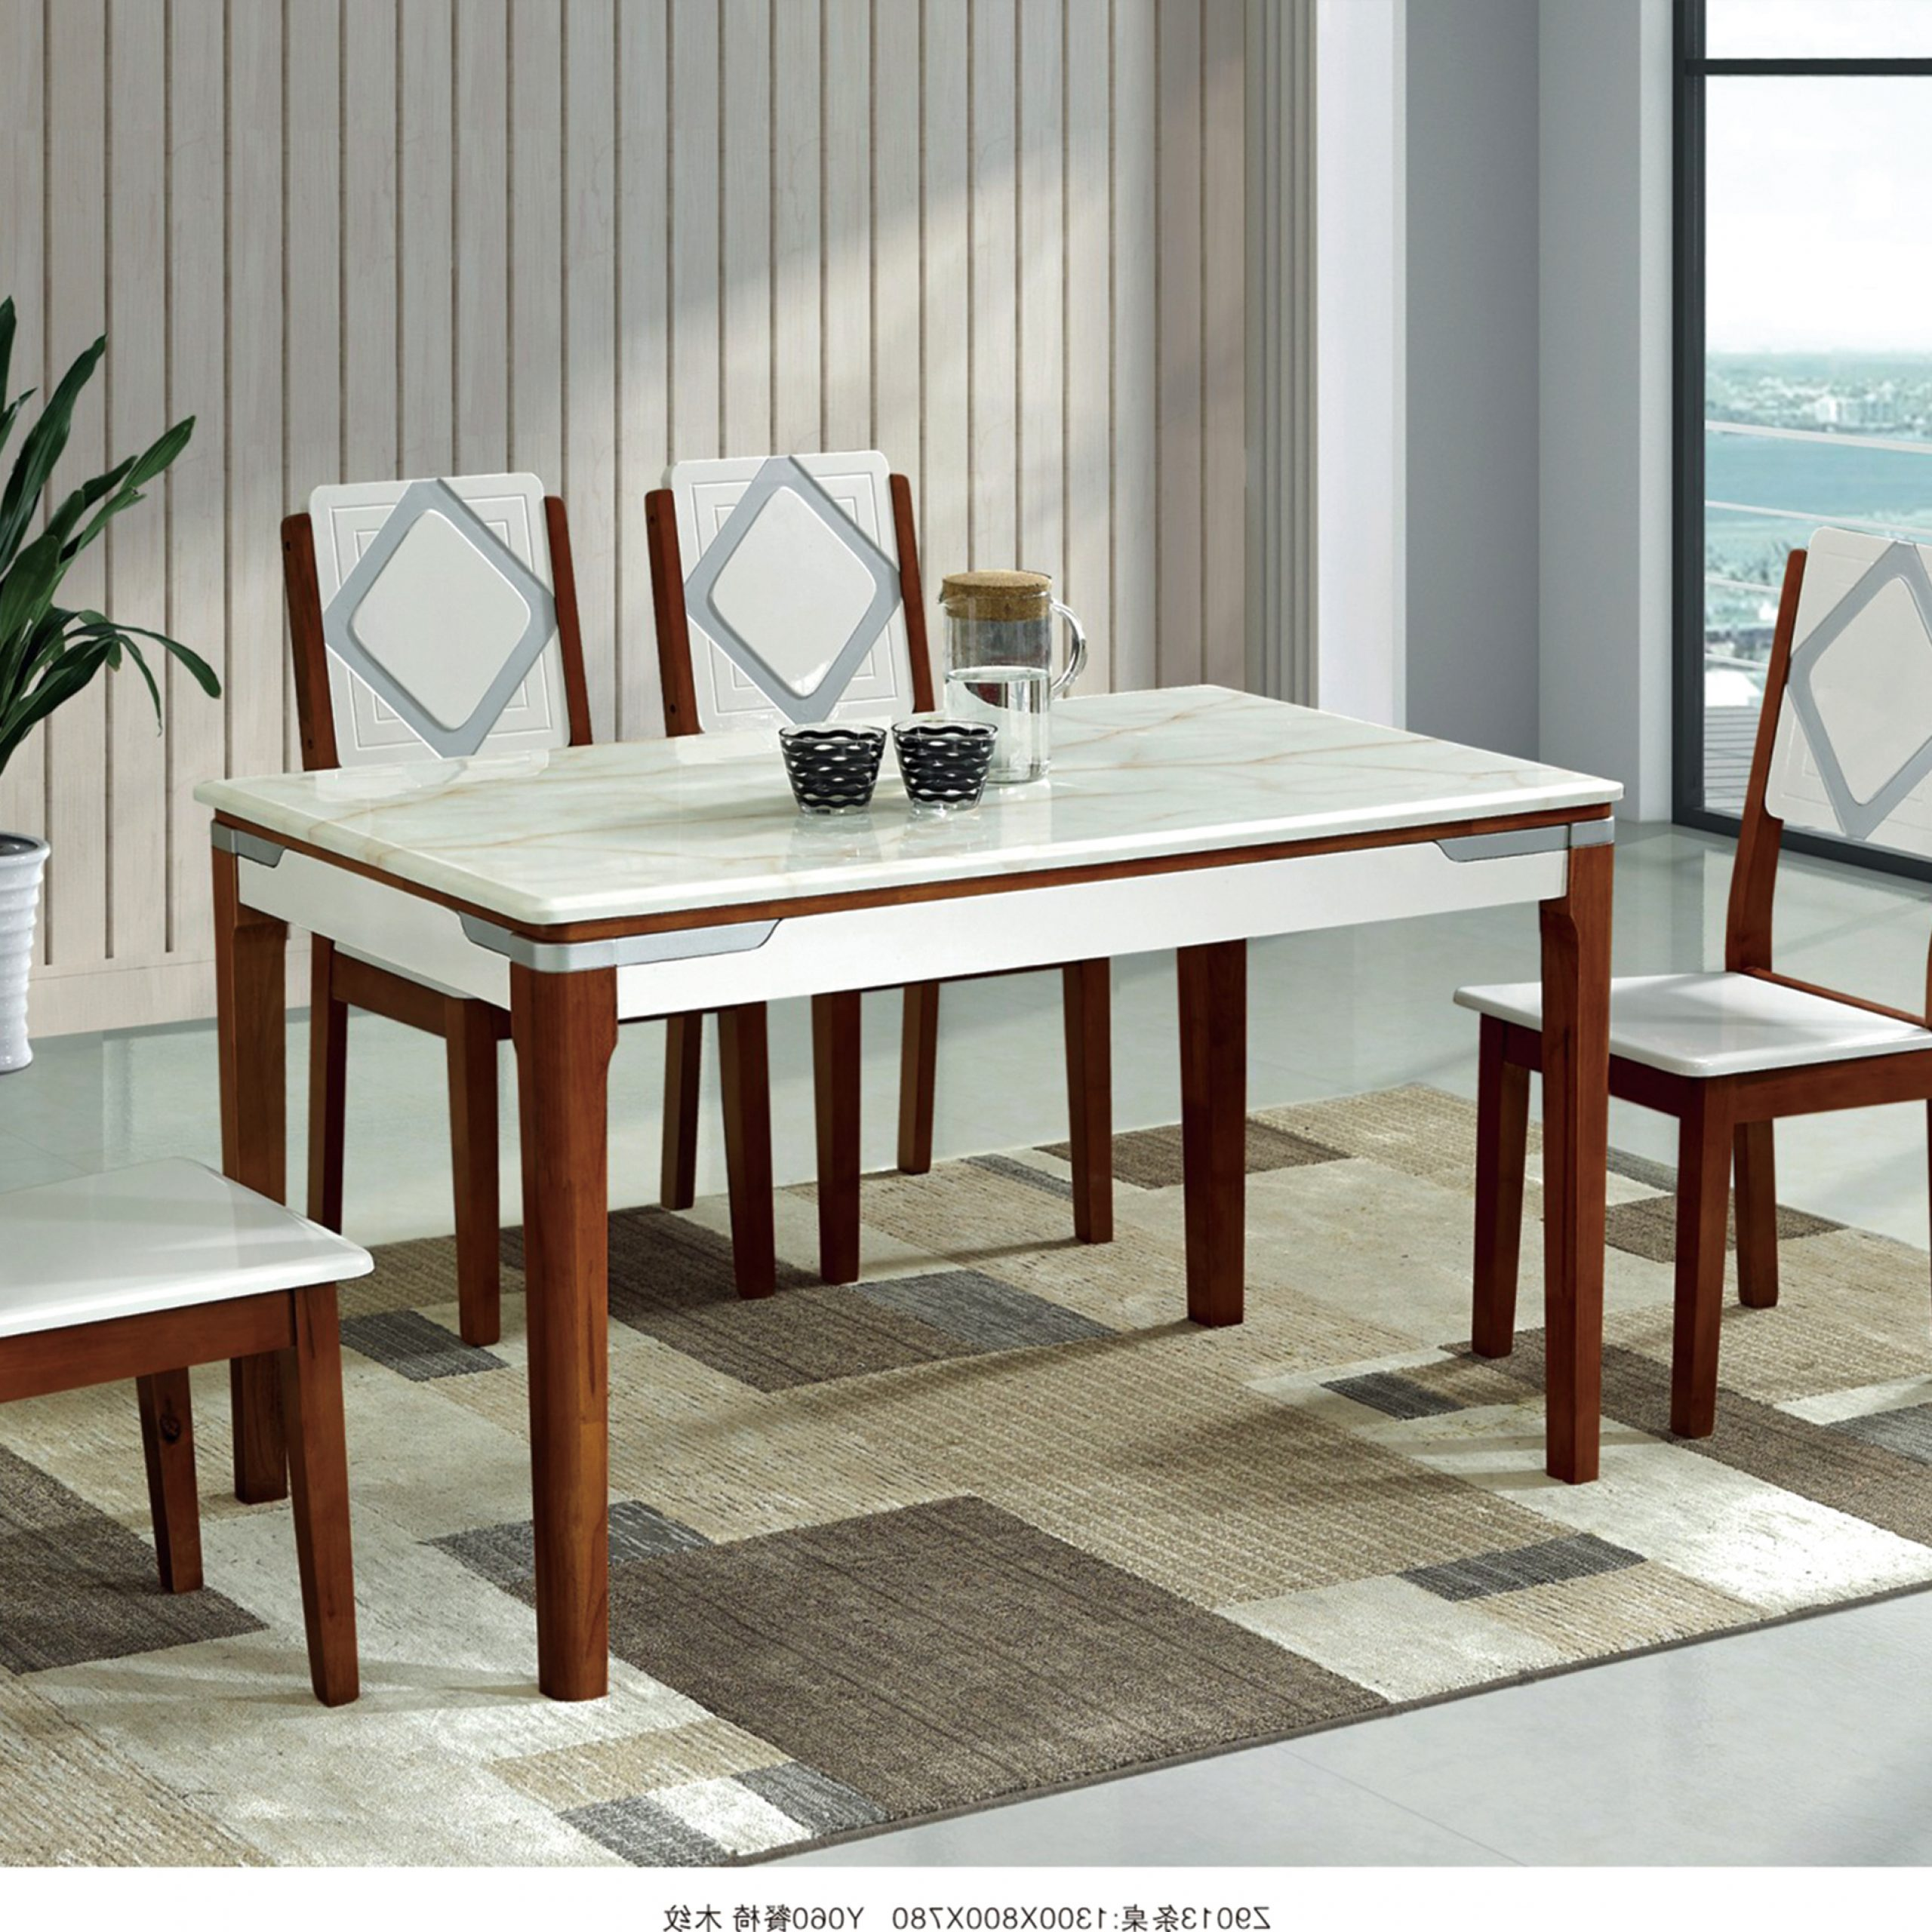 Widely Used Home Furniture White Marble Top Dining Table(Bf153) Within Dining Tables With White Marble Top (Gallery 30 of 30)